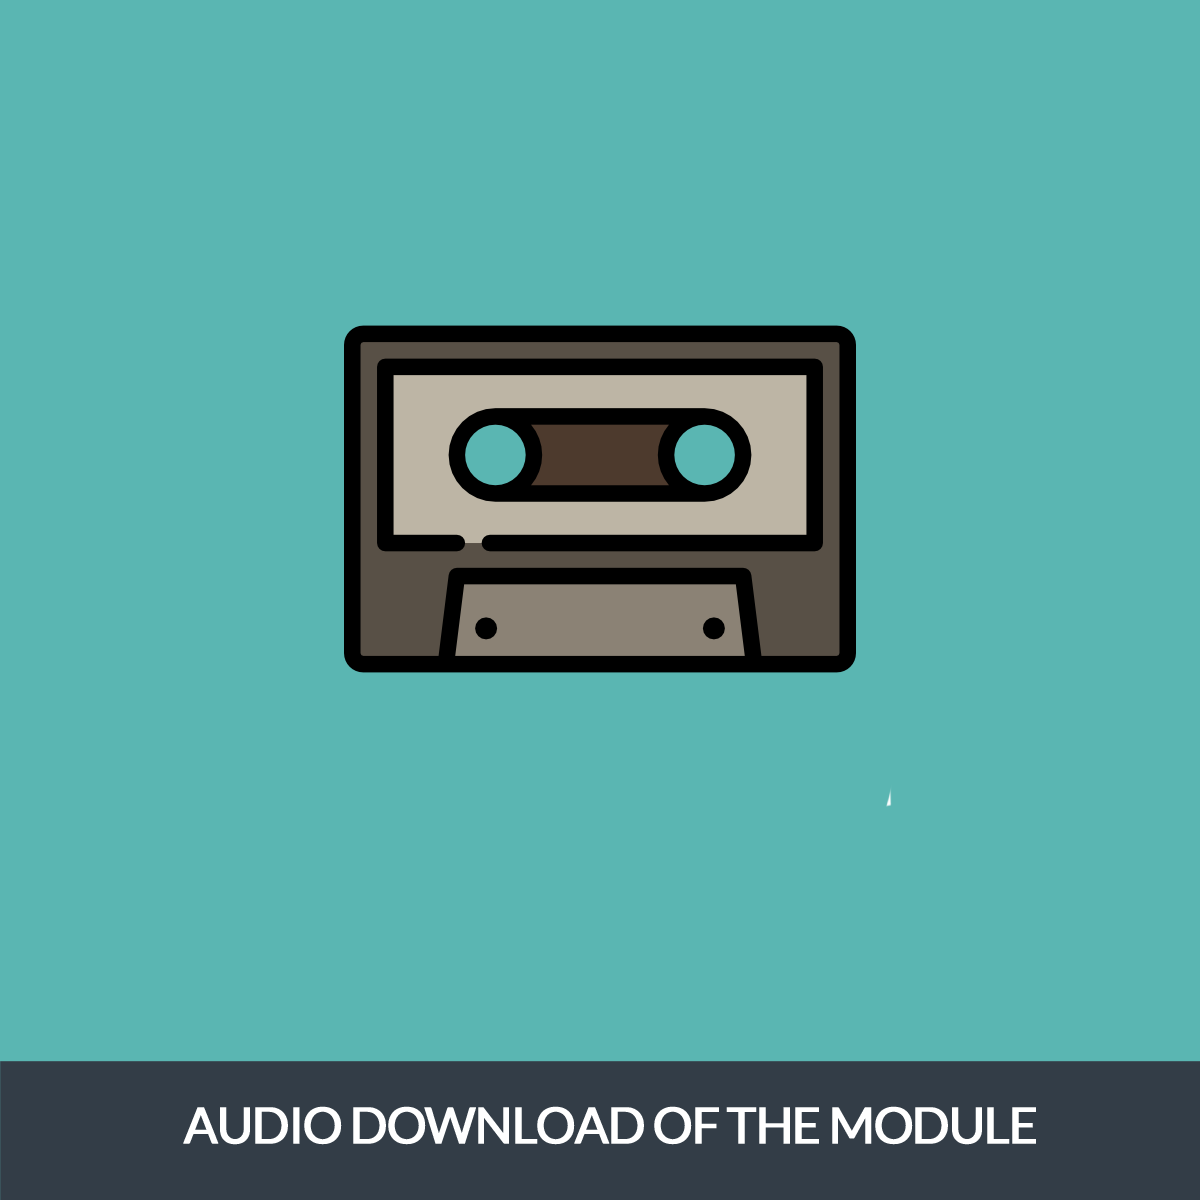 audio download-squashed.png